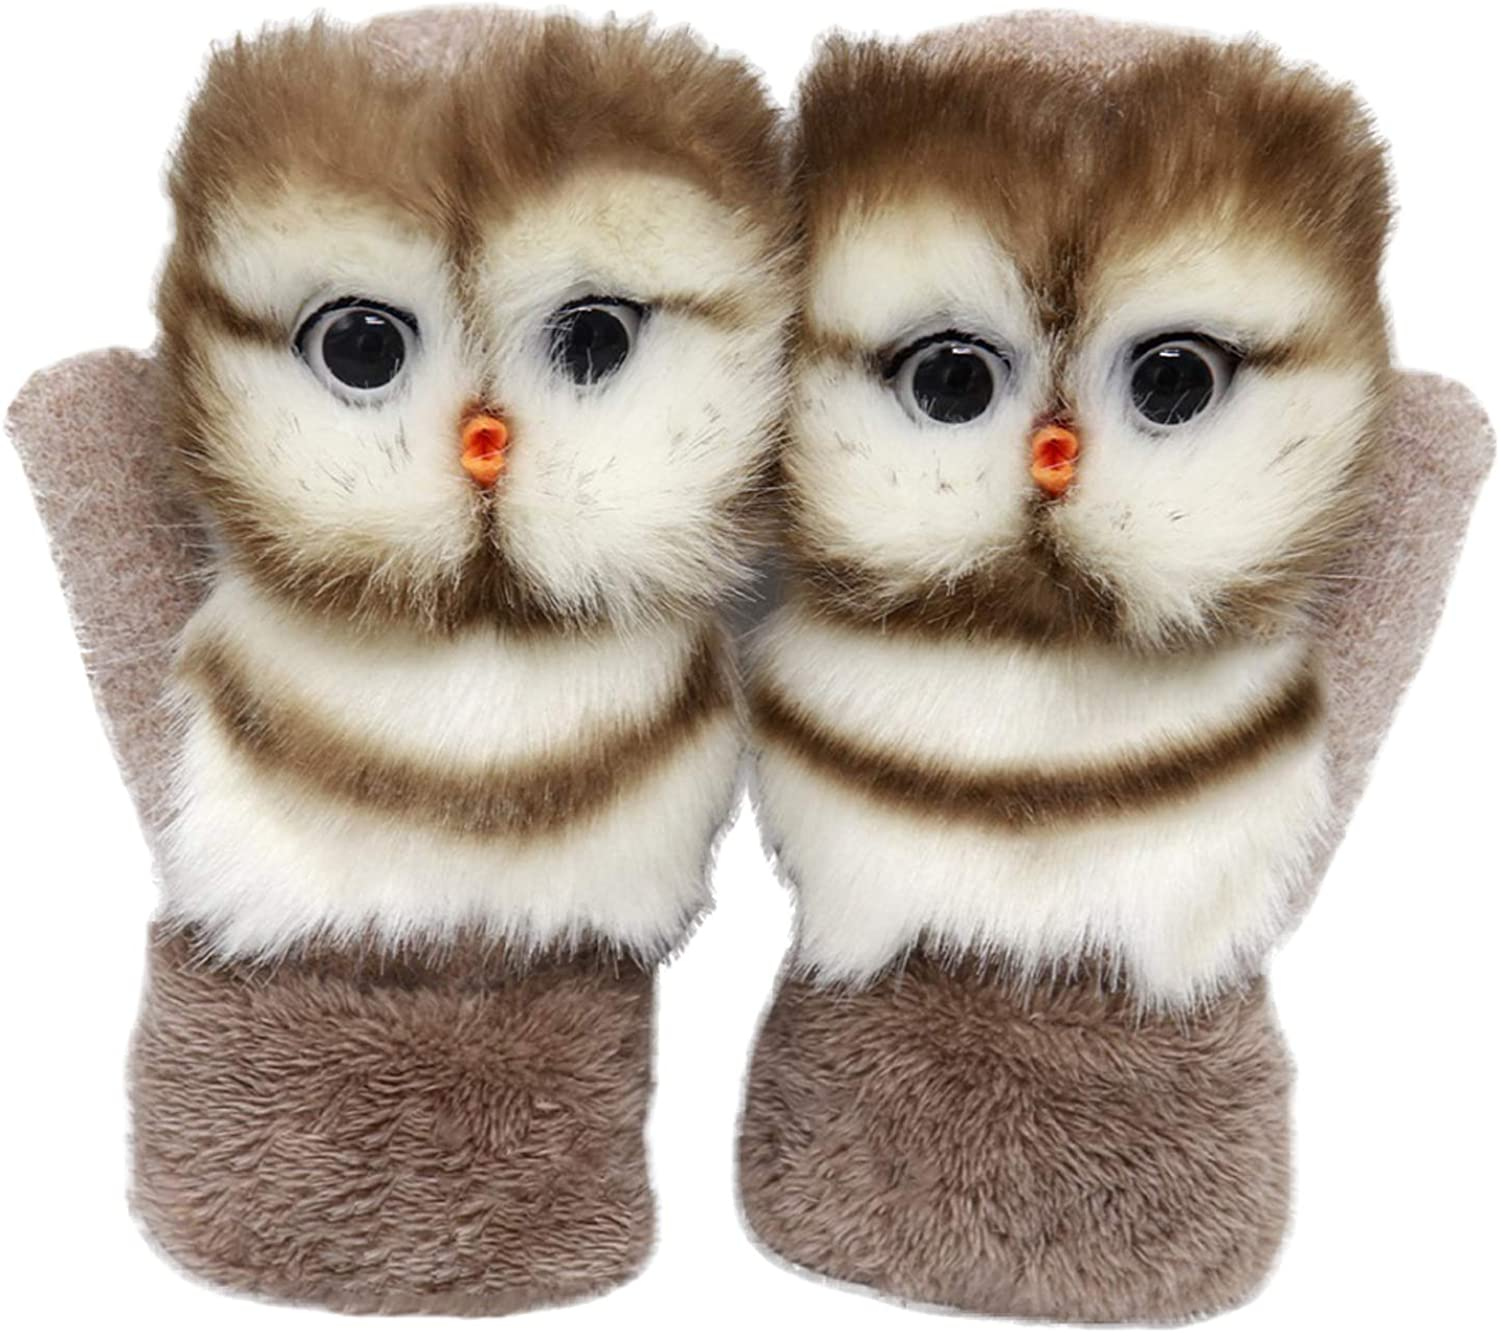 Winter Wool Mitten Gloves for Women Cute Animal Gloves Cold Weather Elastic Thermal Warm Gloves